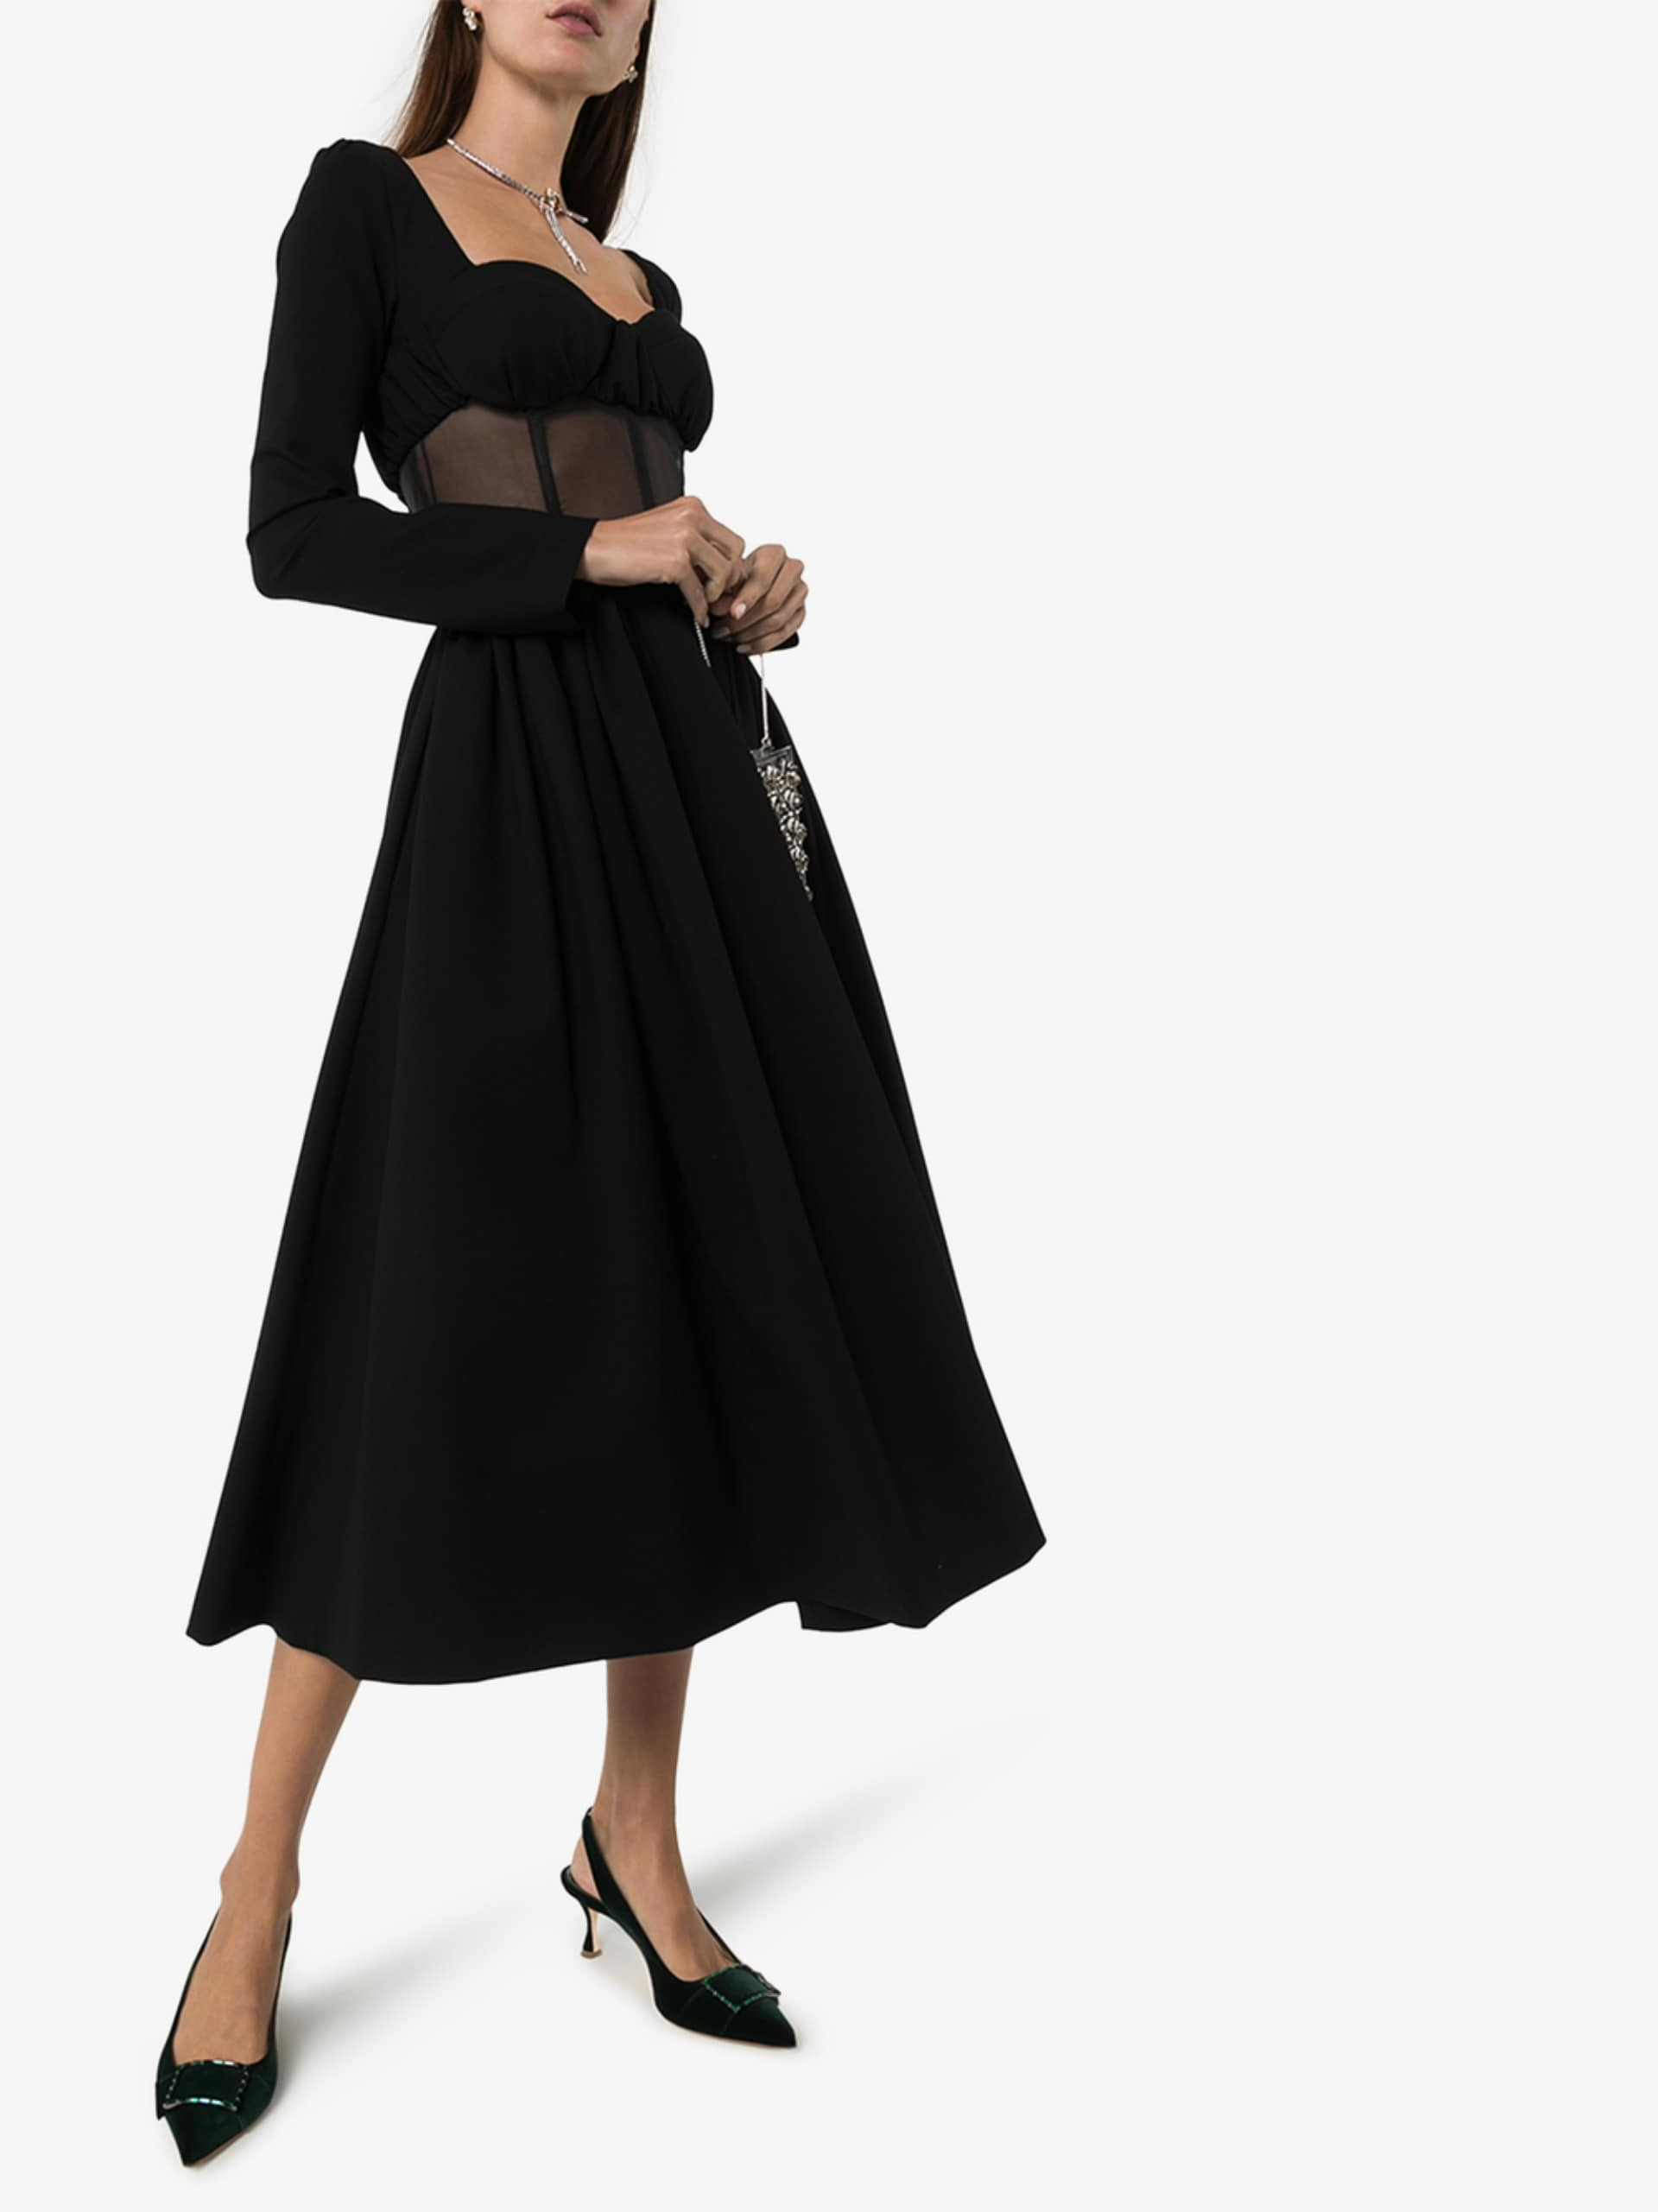 ROSIE ASSOULIN Sheer Bodice Silk Midi Dress